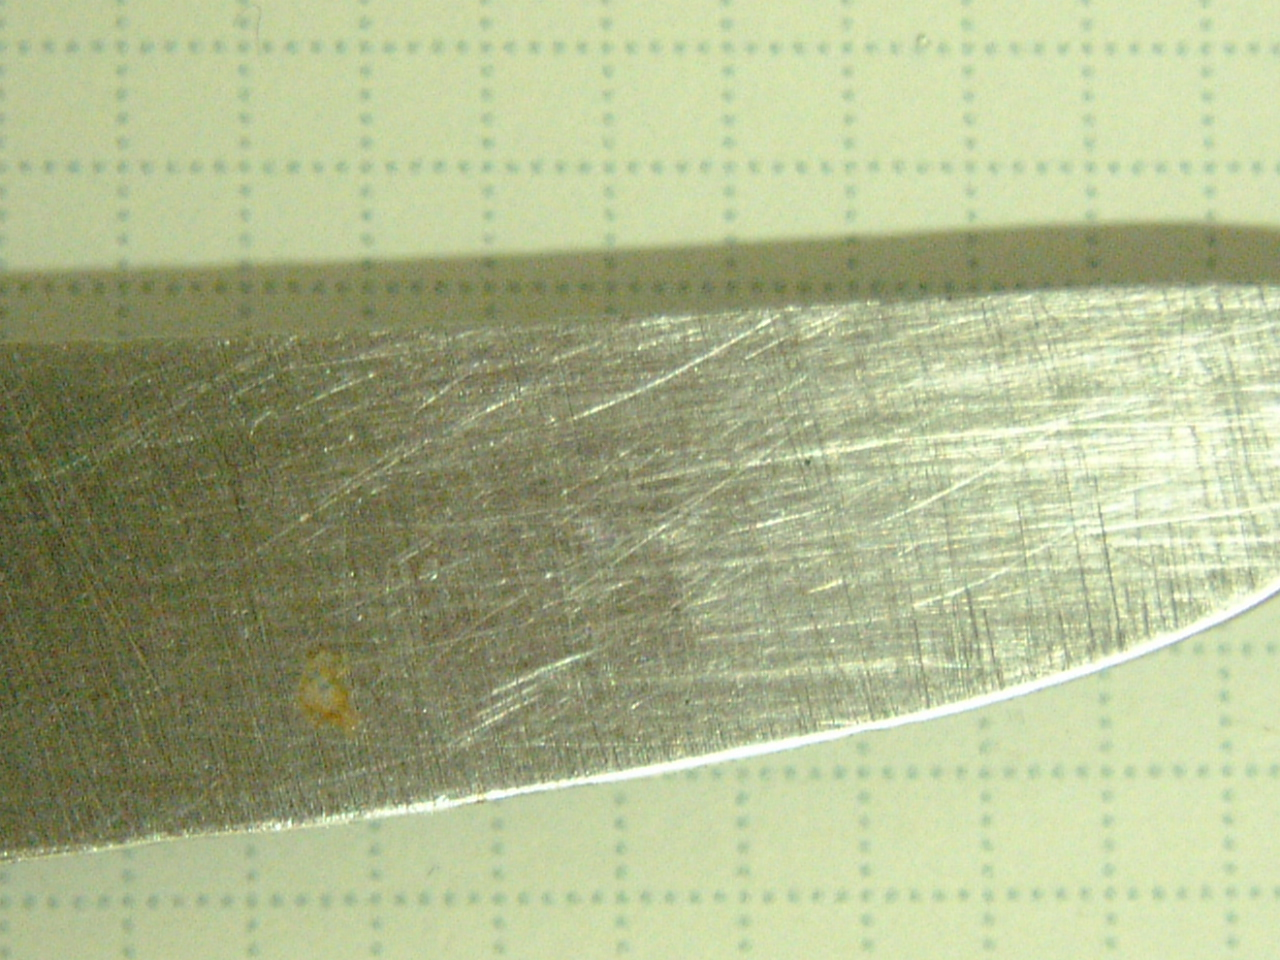 maartent knife scratches scratchmarks sharp kitchen equipment